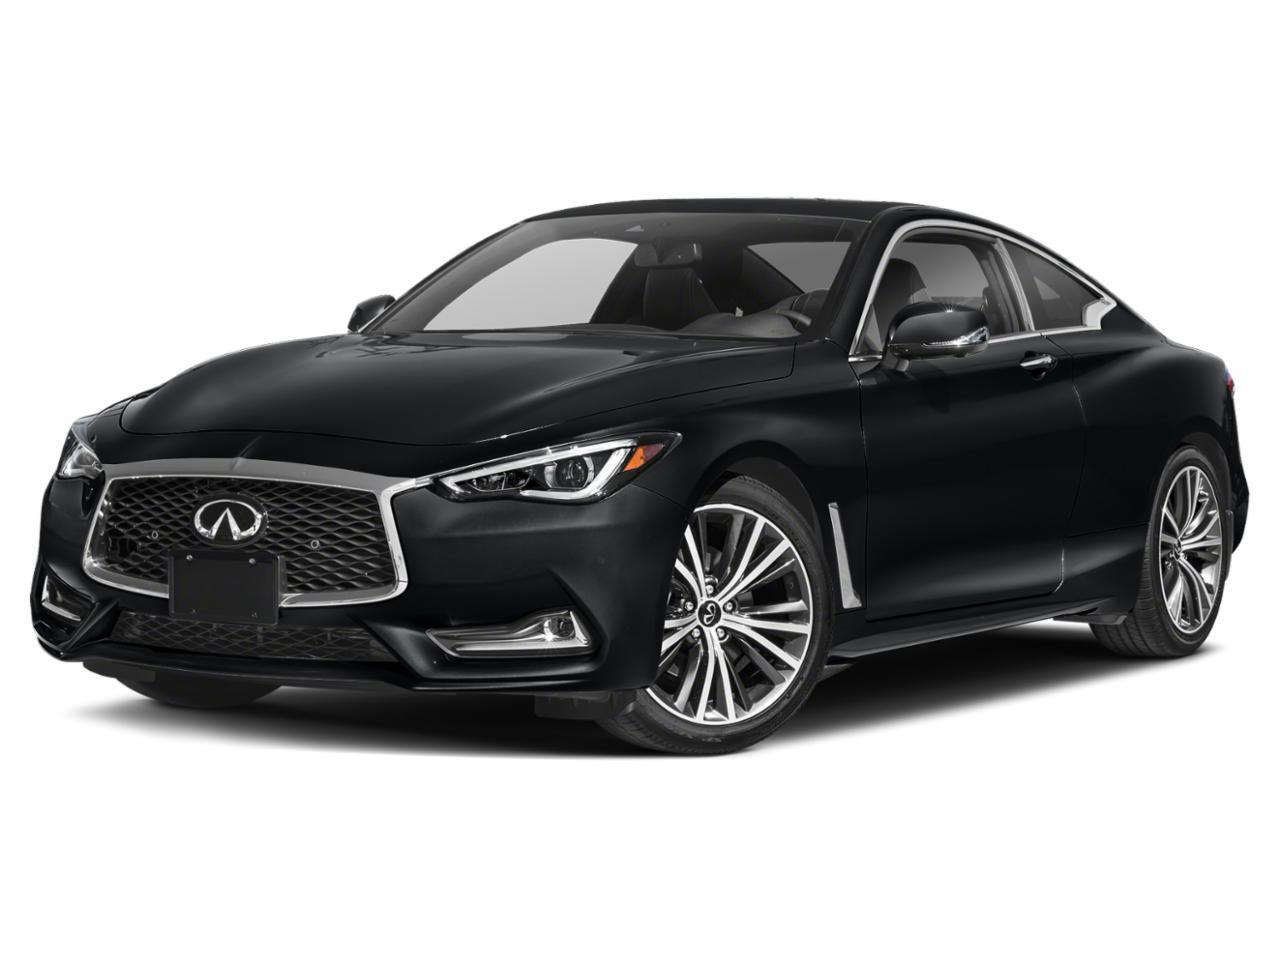 2021 Infiniti Q60 RED SPORT Oshkosh WI